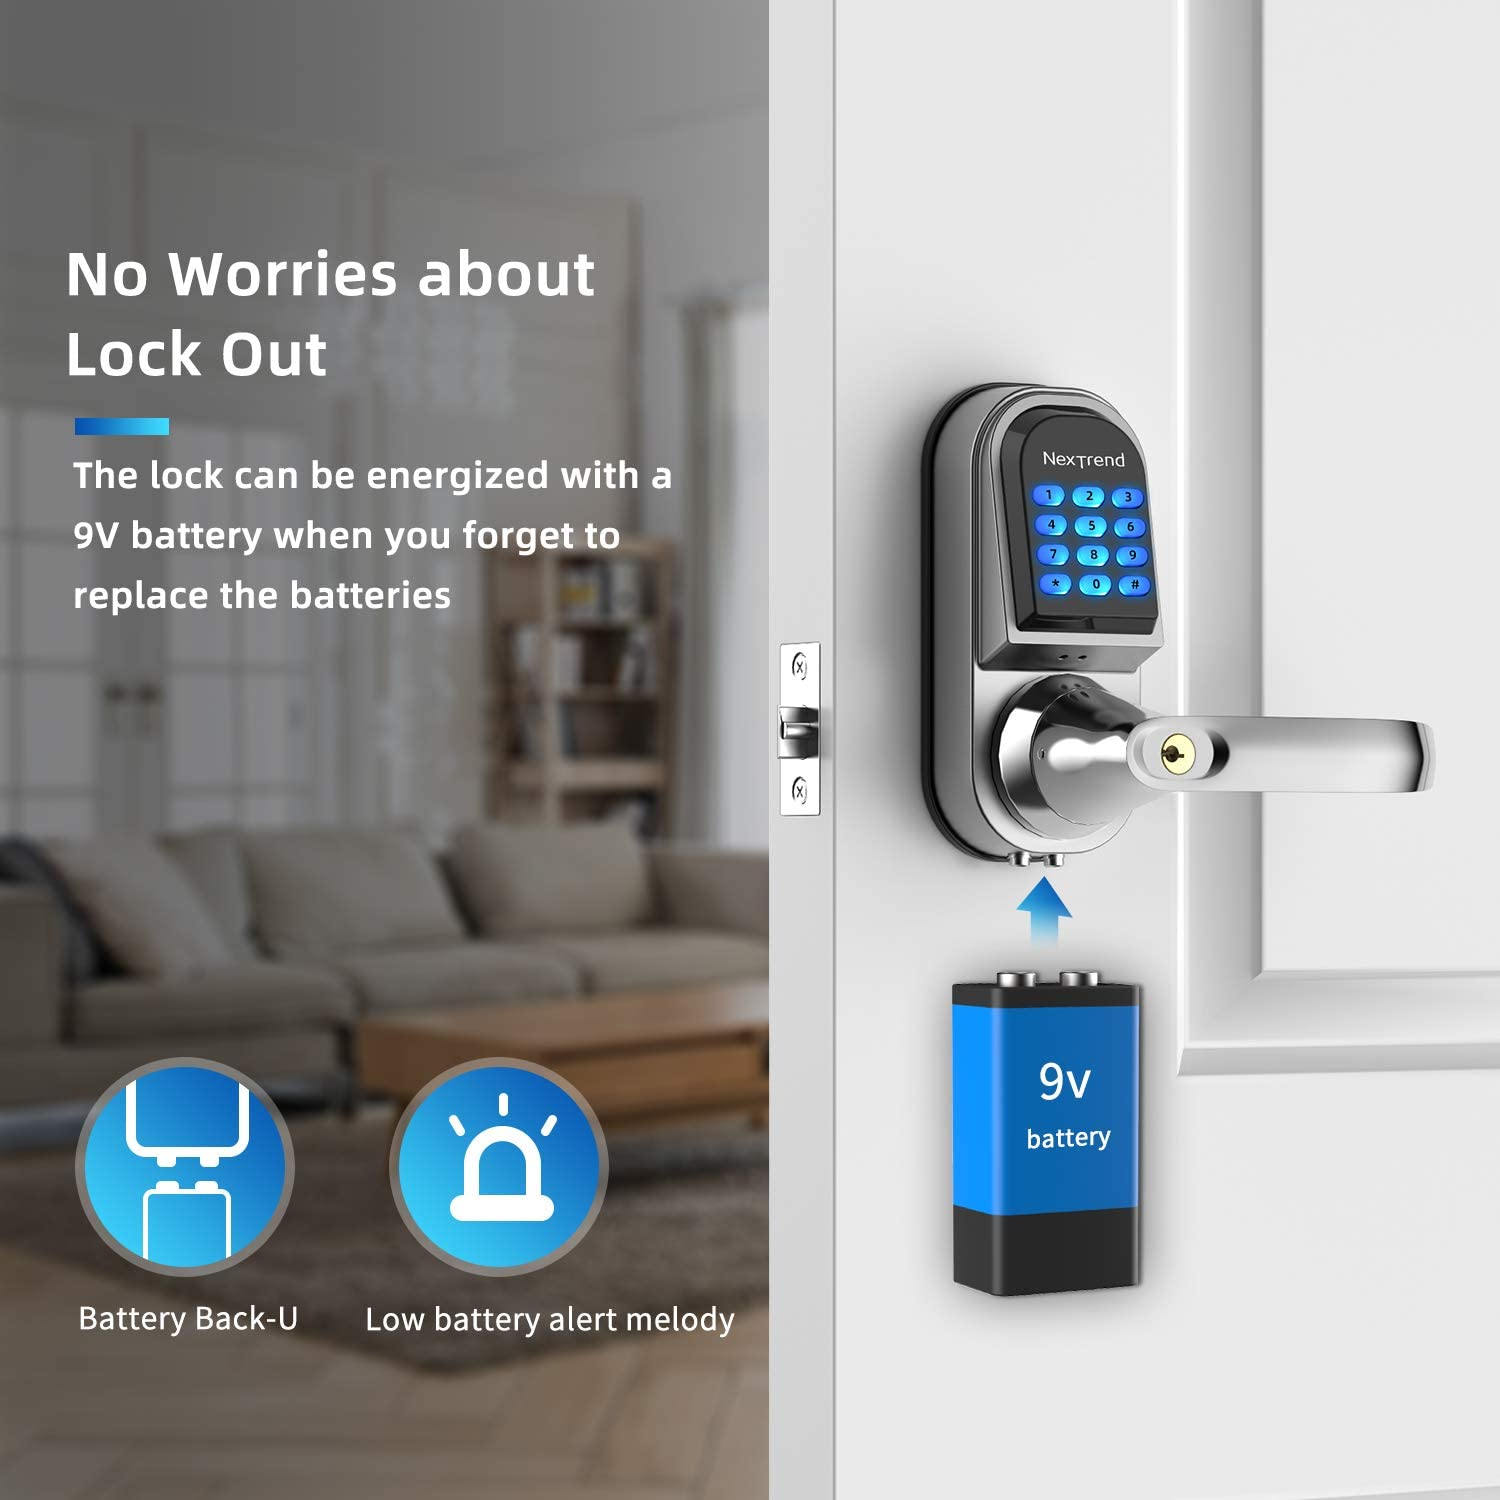 Bluetooth Lock Right Handle Hotel Apartment Touchscreen Mechanical Keys Free APP Enabled Auto Lock Real-time Record for Home NexTrend Electronic Door Lock with Bluetooth Keyless